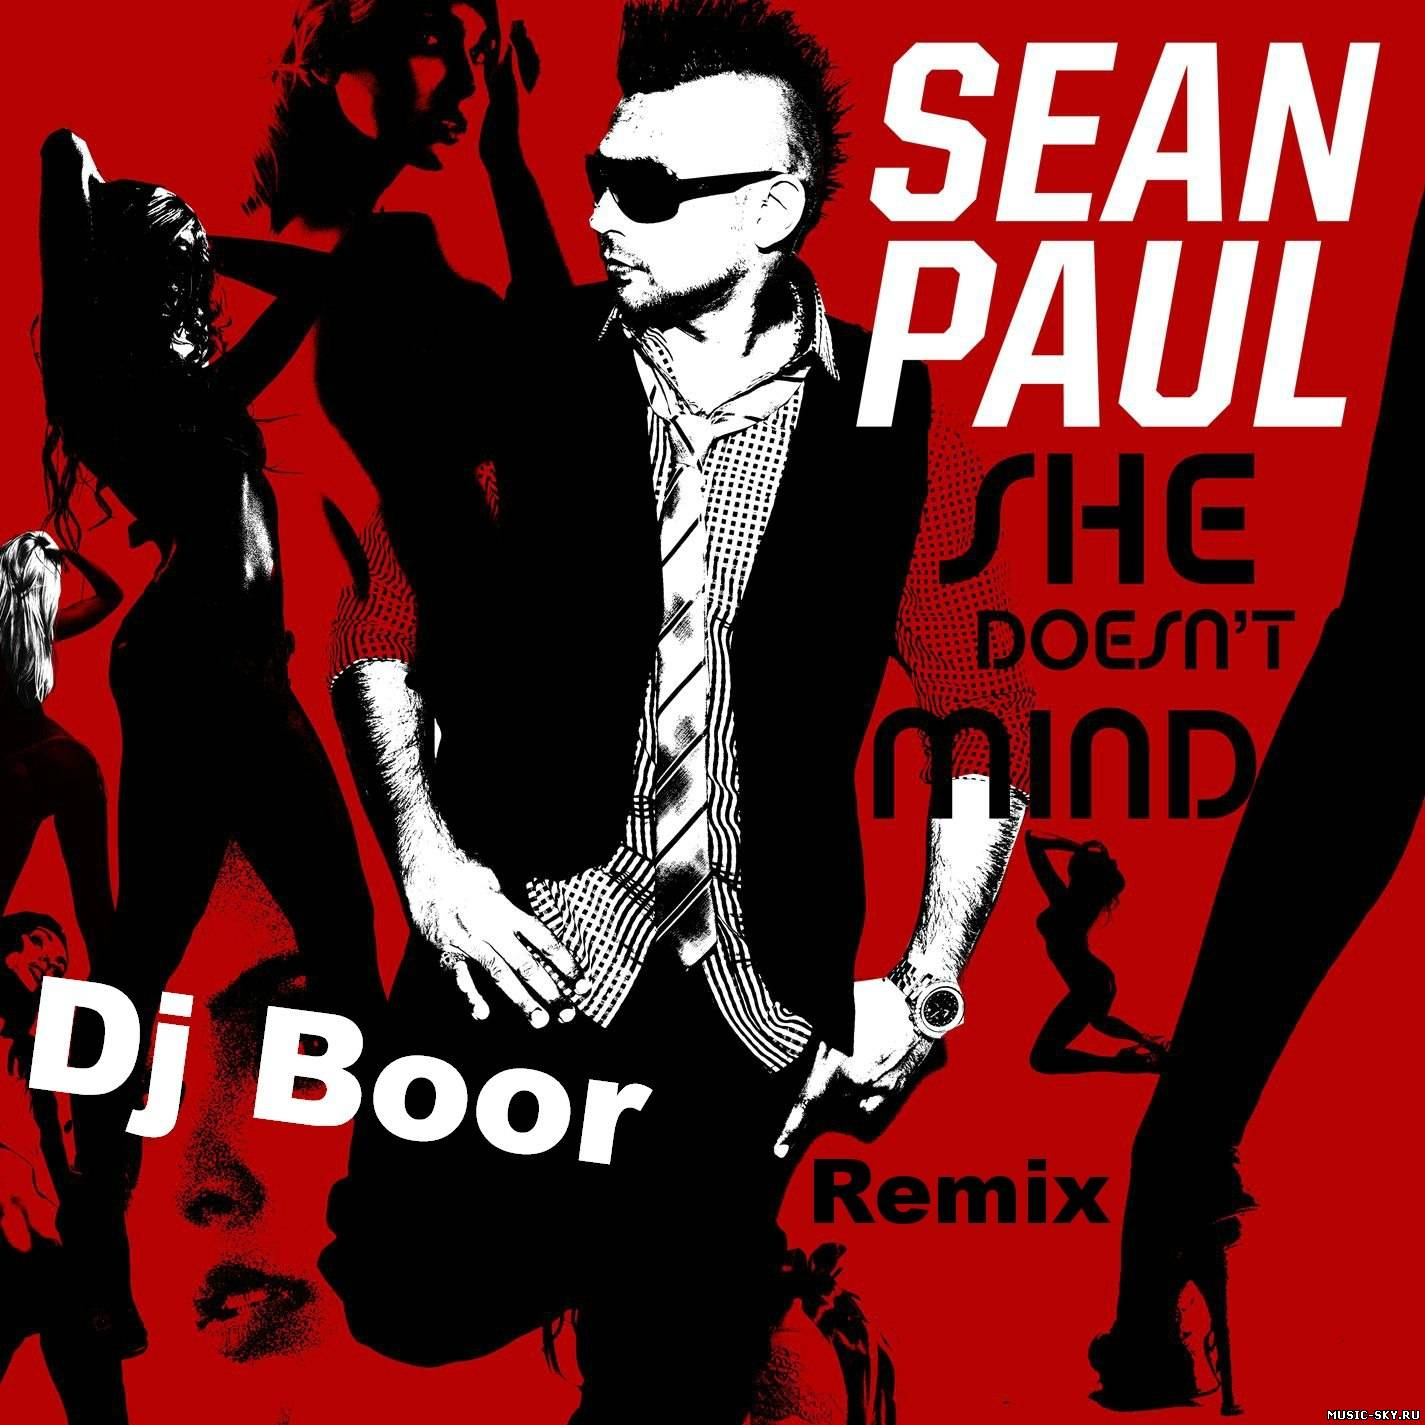 Sean Paul - She doesnt mind (Dj Boor Remix)